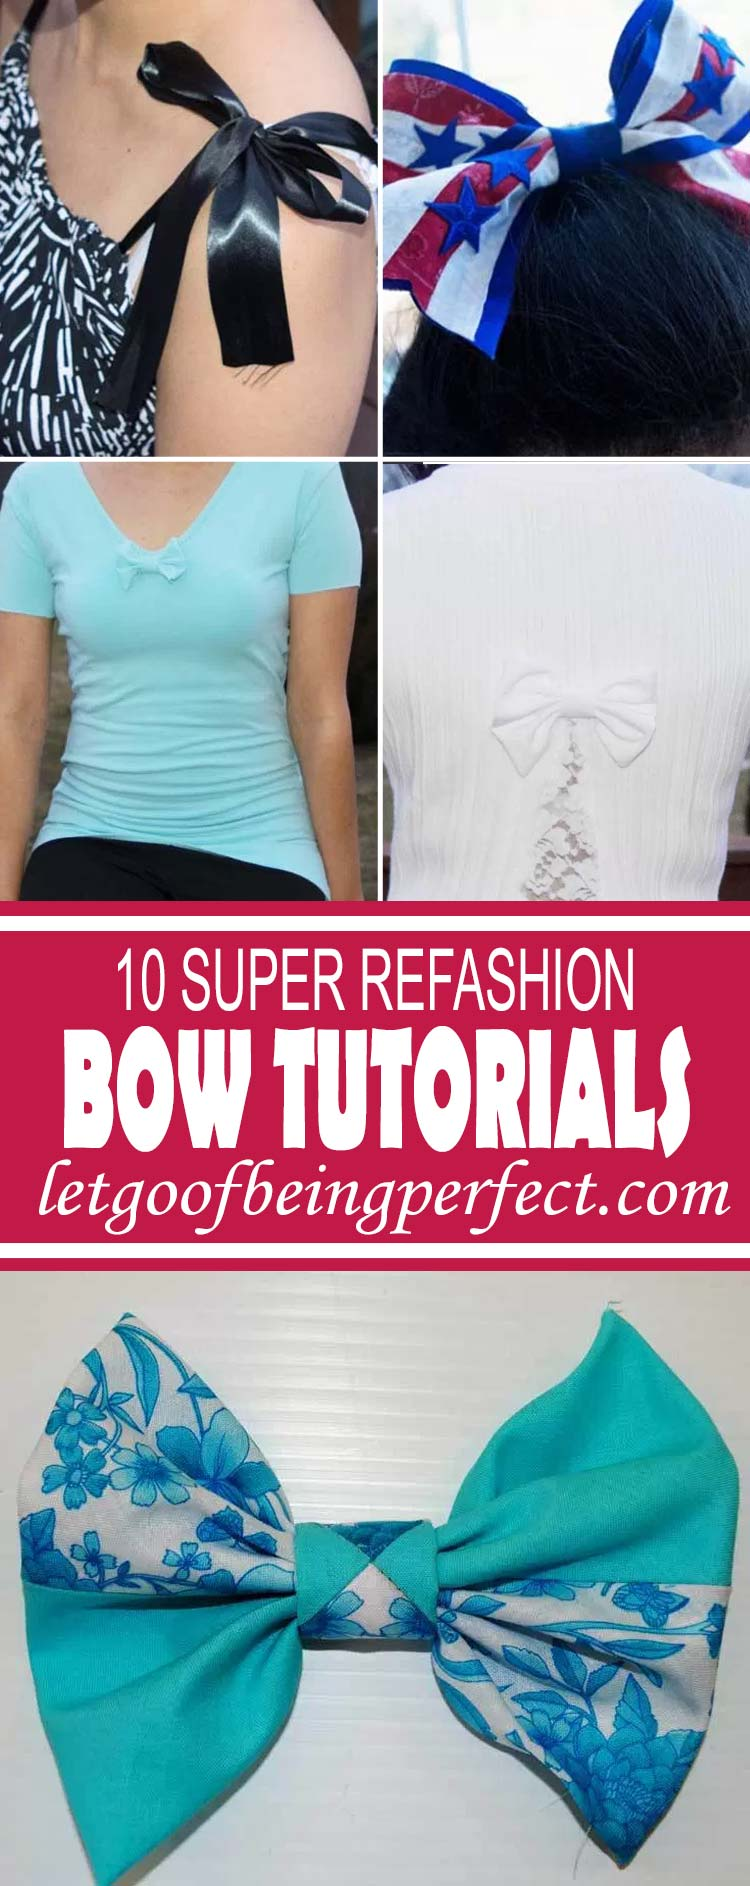 10 Super Bow Refashion Tutorials - 10 super step-by-step DIY sewing tutorials with clear photographs and instructions. Upcycle some old t-shirts, sweaters, and other fabrics to make these cute bow outfits for yourself or your home. A great, low-cost way to change up your wardrobe or home accessories. Remake, redo, reuse, and recycle to help save money and save the planet. Explore the web site for more refashioning tutorials, dozens of cute refashionista and fashion ideas. http://letgoofbeingperfect.com/